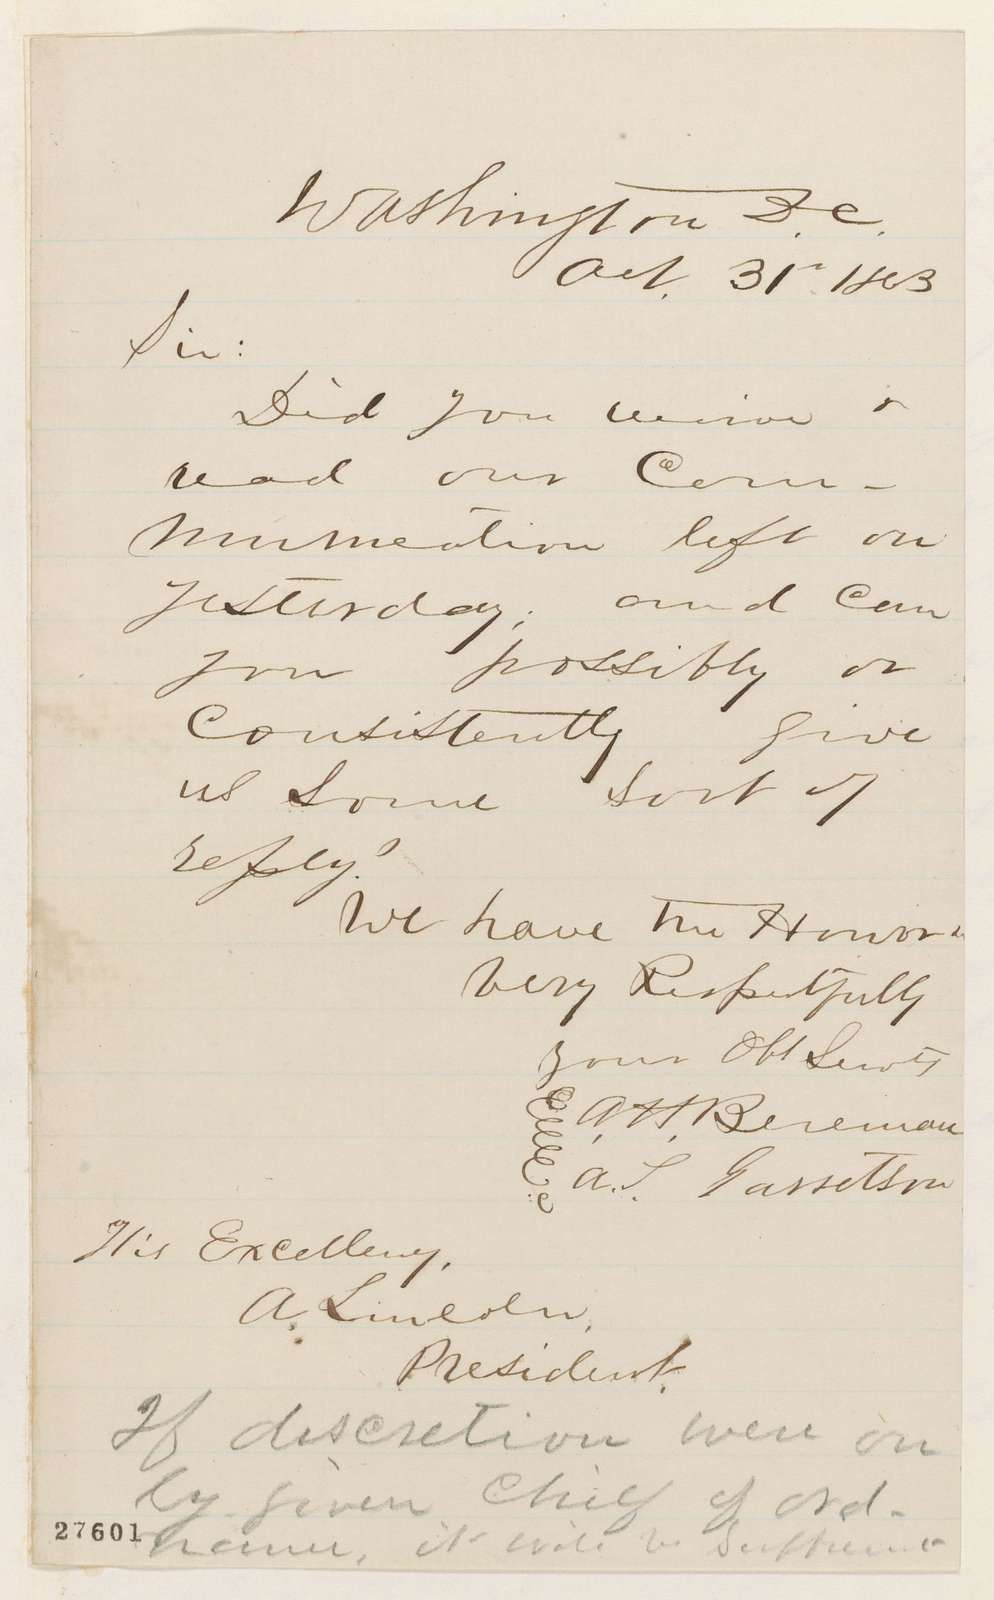 Abraham Lincoln papers: Series 1. General Correspondence. 1833-1916: Arthur H. Boreman and A. S. Garretson to Abraham Lincoln, Saturday, October 31, 1863 (Request reply to their letter)